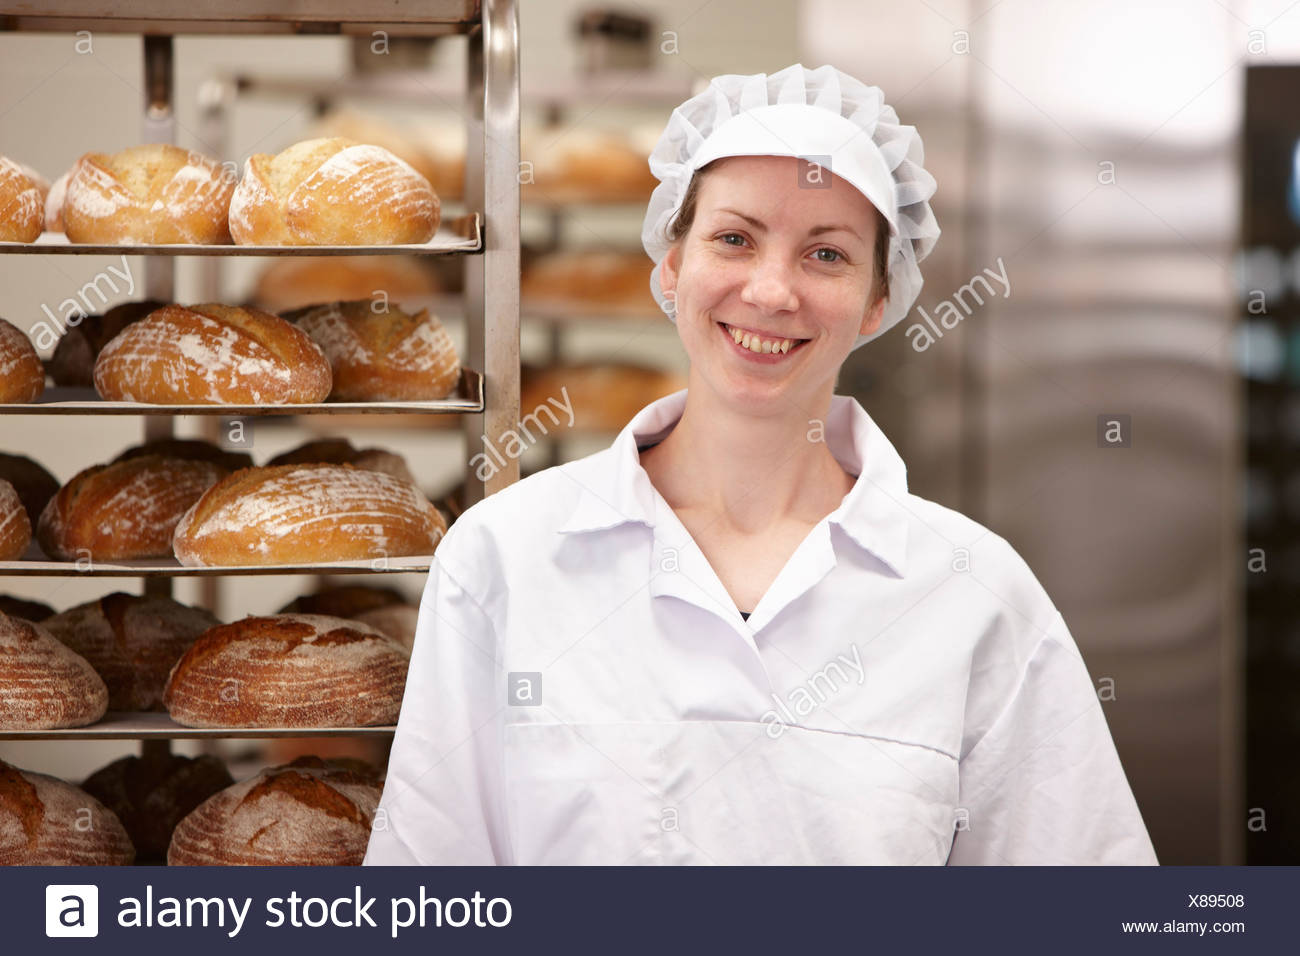 Smiling chef standing in kitchen - Stock Image